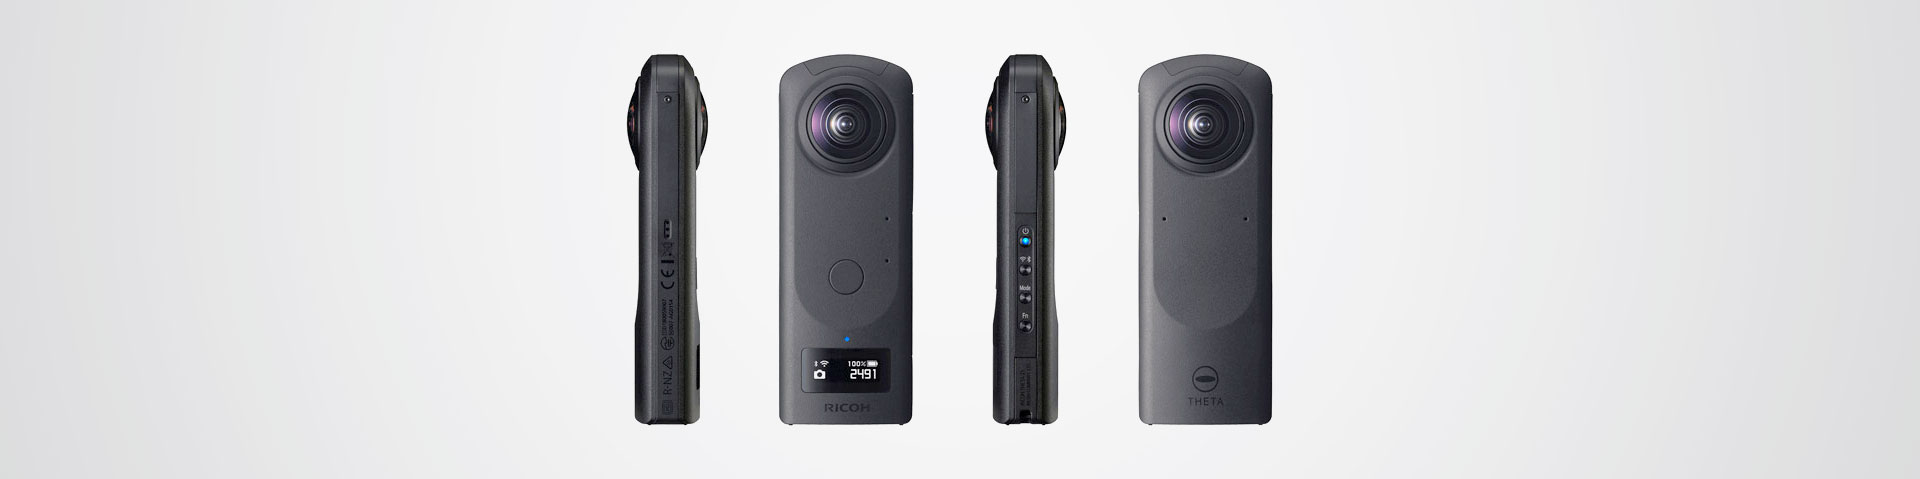 RICOH THETA Z1 - The flagship model